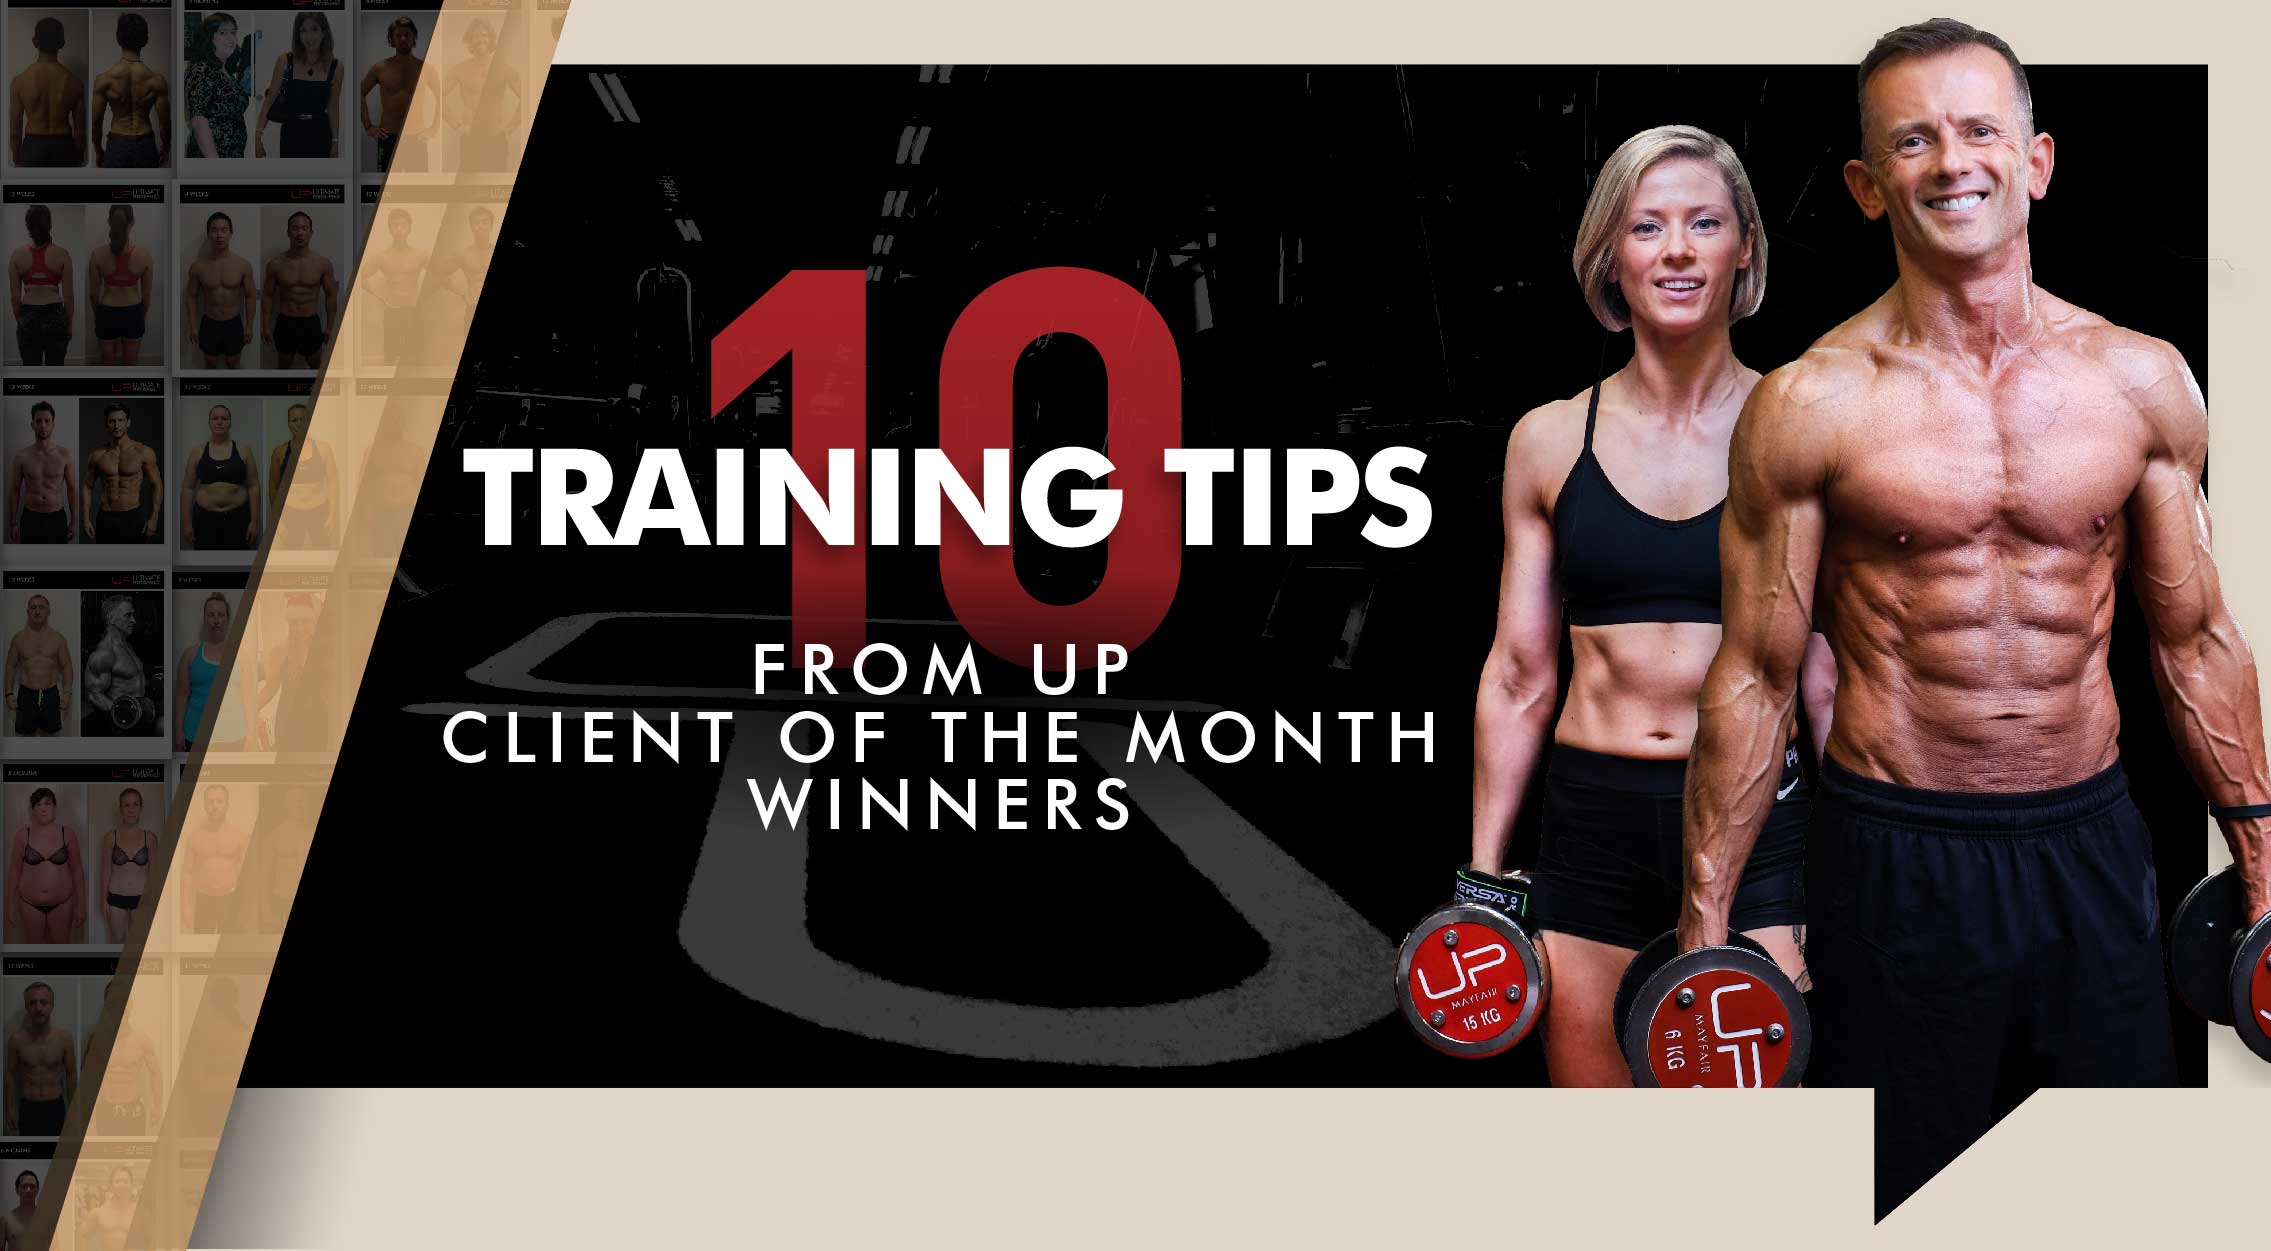 Body Transformation training tips